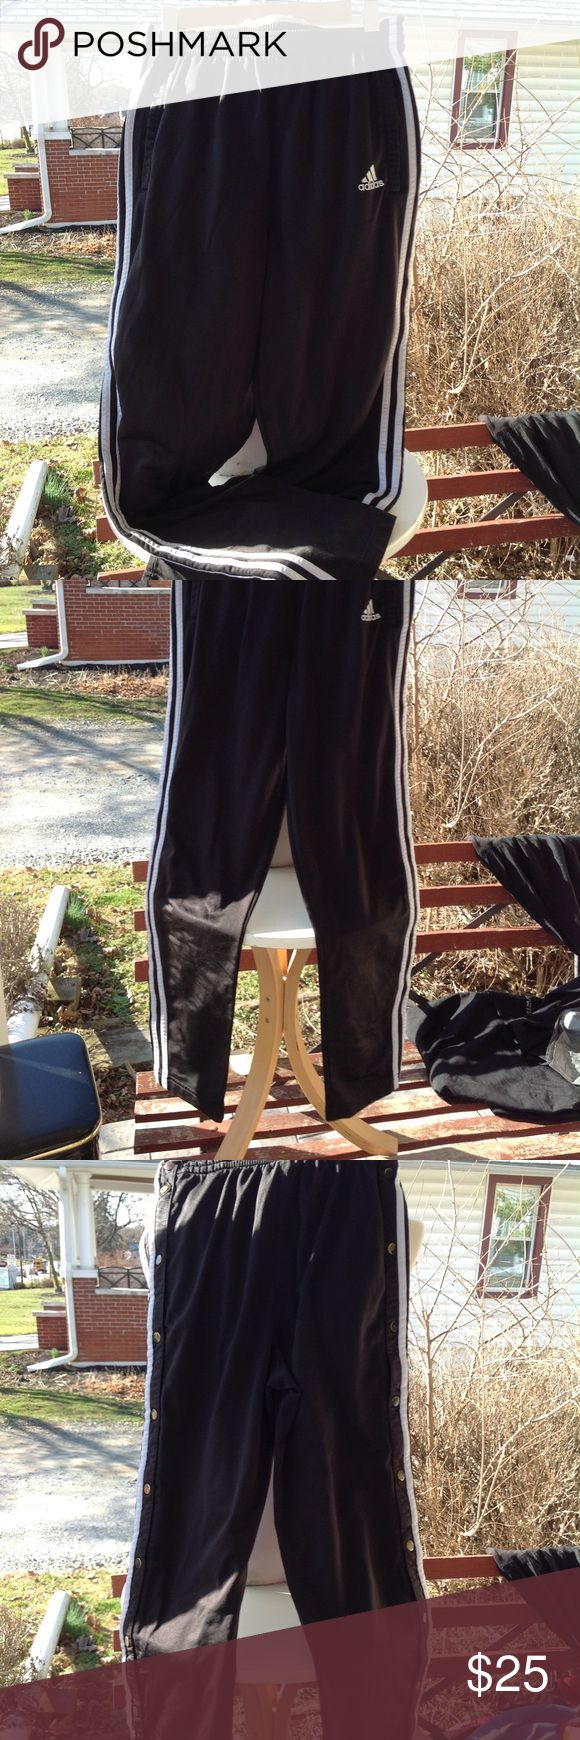 Mens Adidas Pants. Size small, black and white, has snaps down the side, in good condition. adidas Pants Sweatpants & Joggers